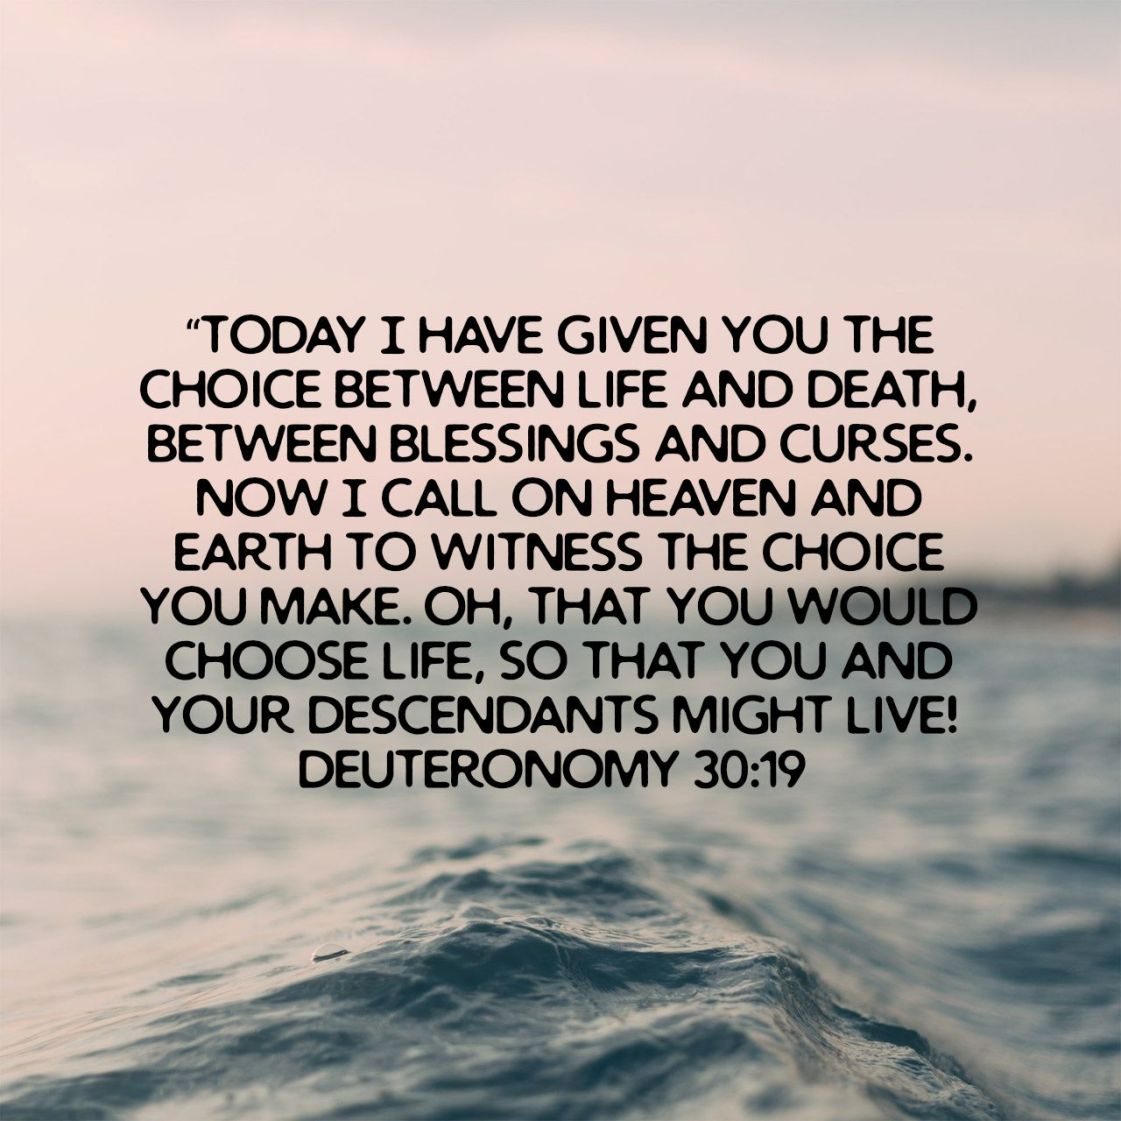 """""""Today I have given you the choice between life and death, between blessings and curses. Now I call on heaven and earth to witness the choice you make. Oh, that you would choose life, so that you and your descendants might live! - Deuteronomy 30:19 NLT"""